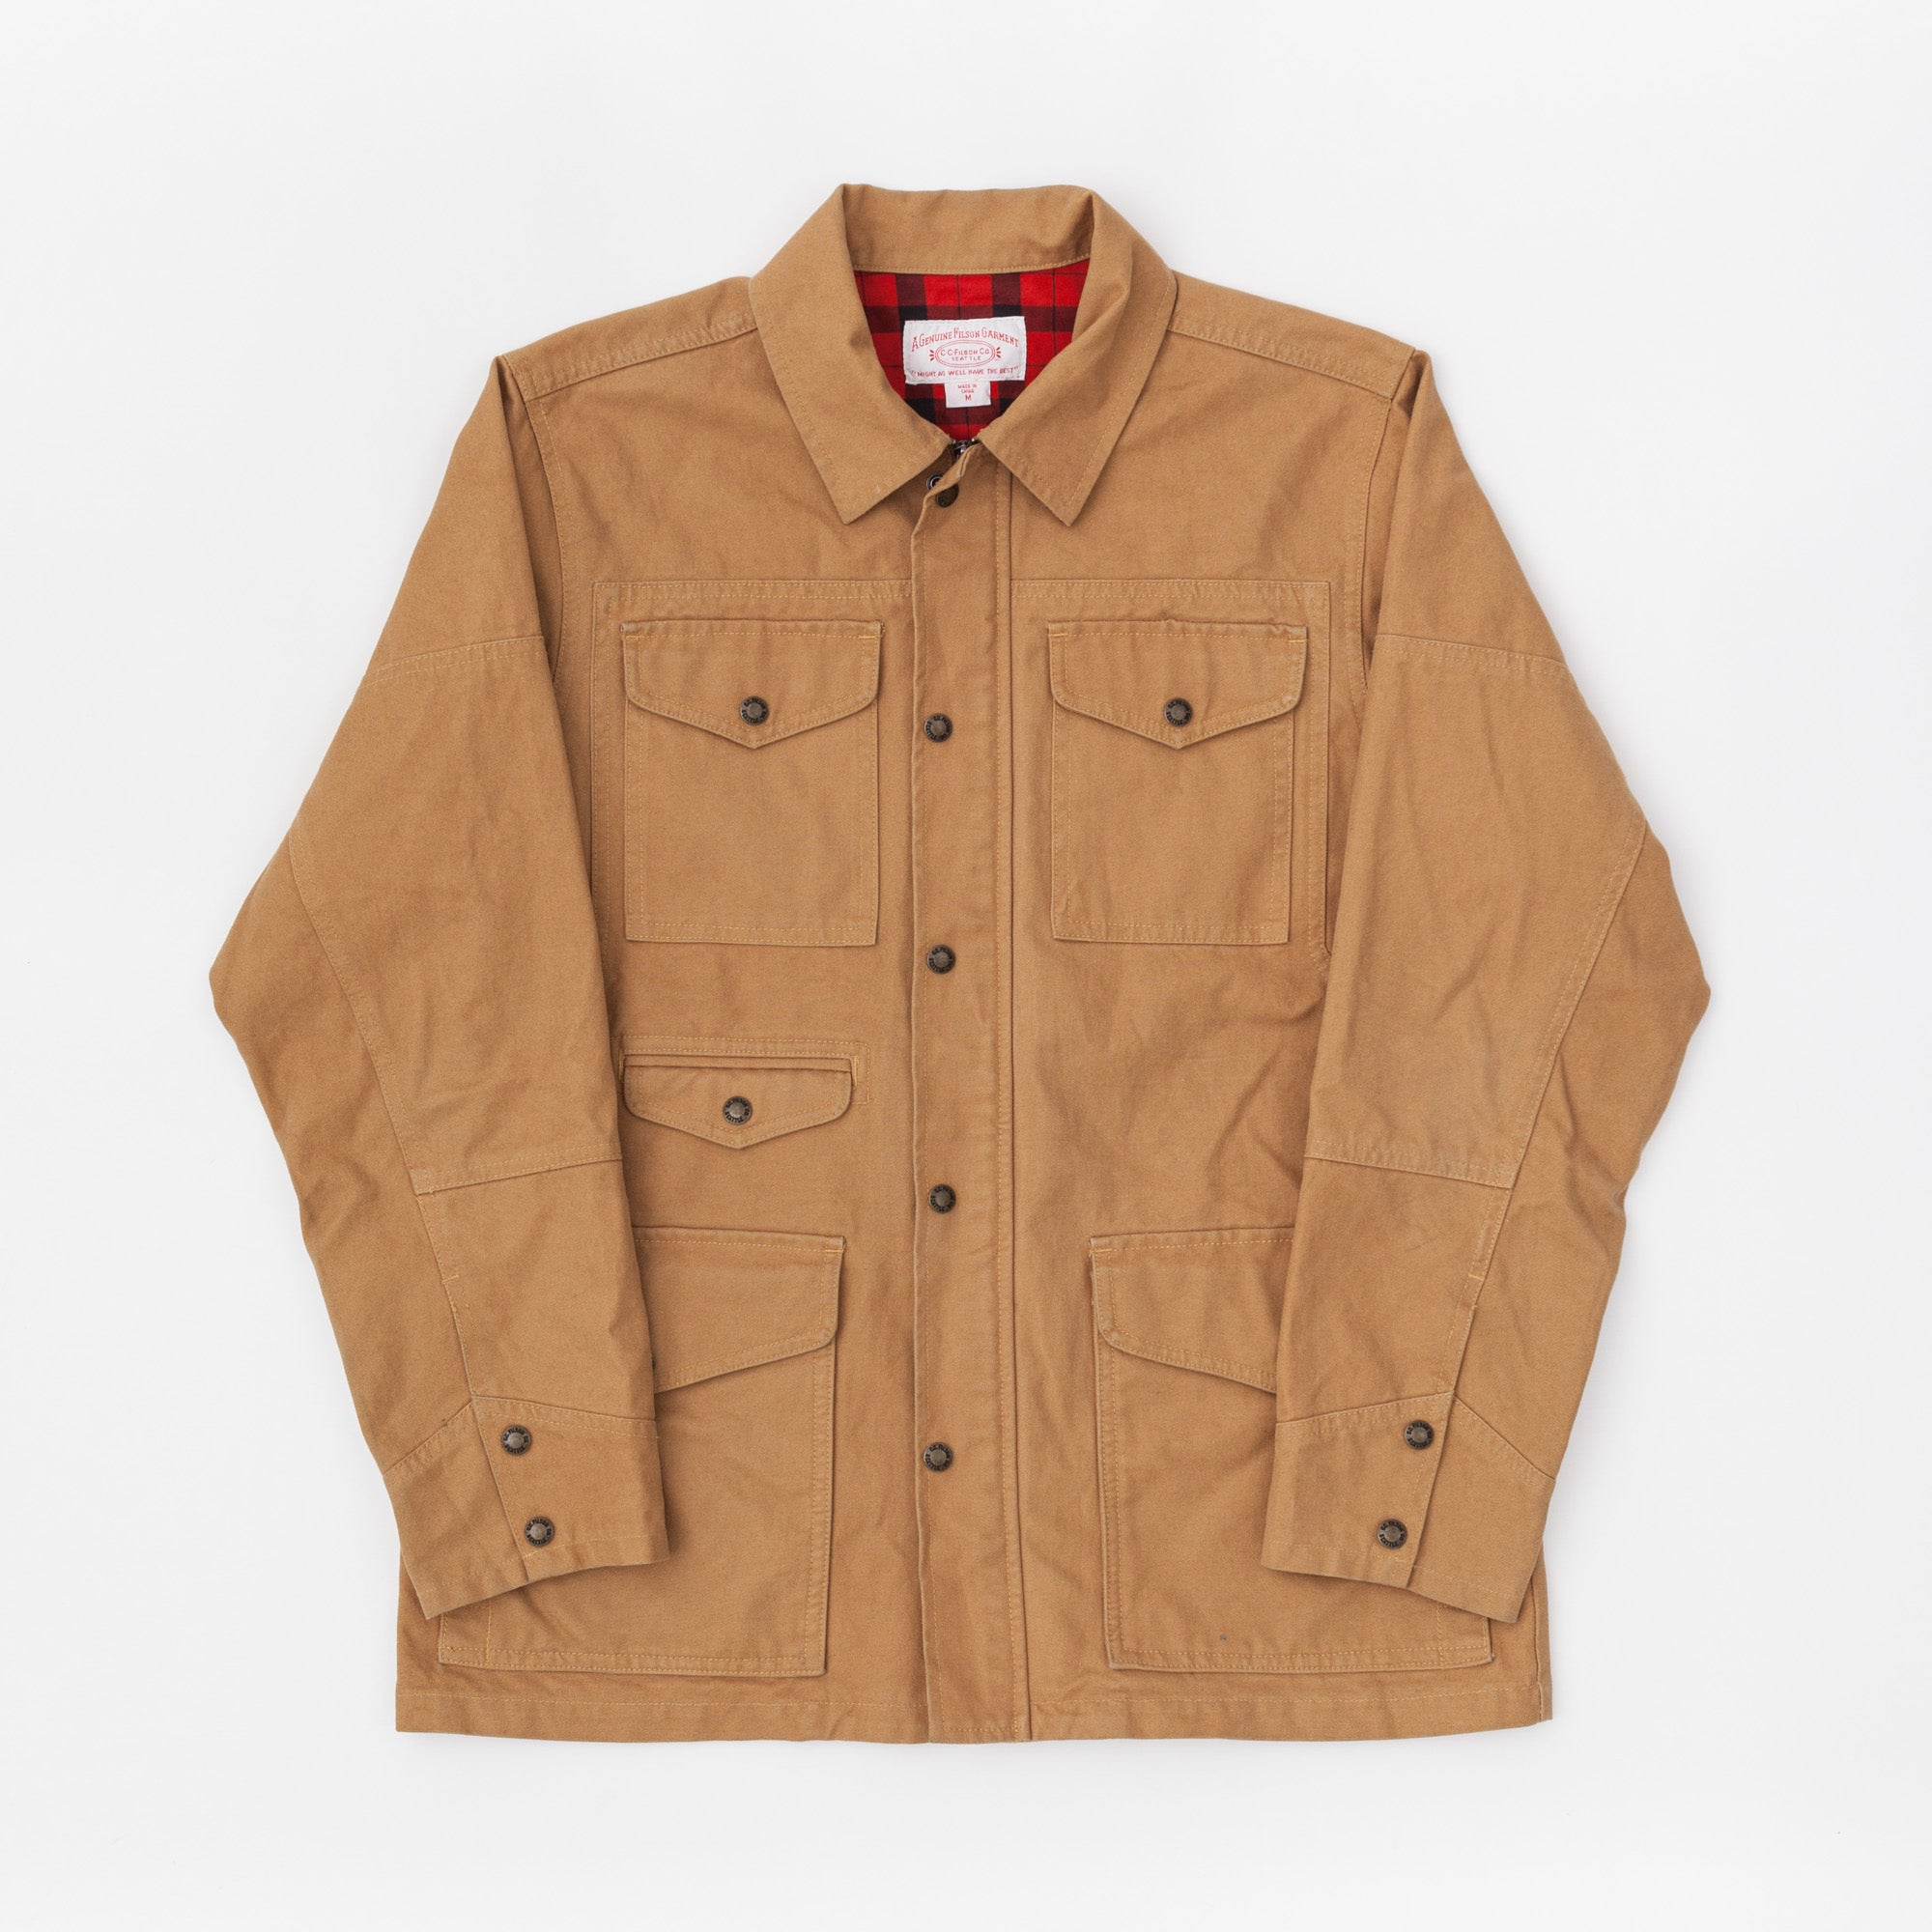 Filson Canvas Hunting Jacket